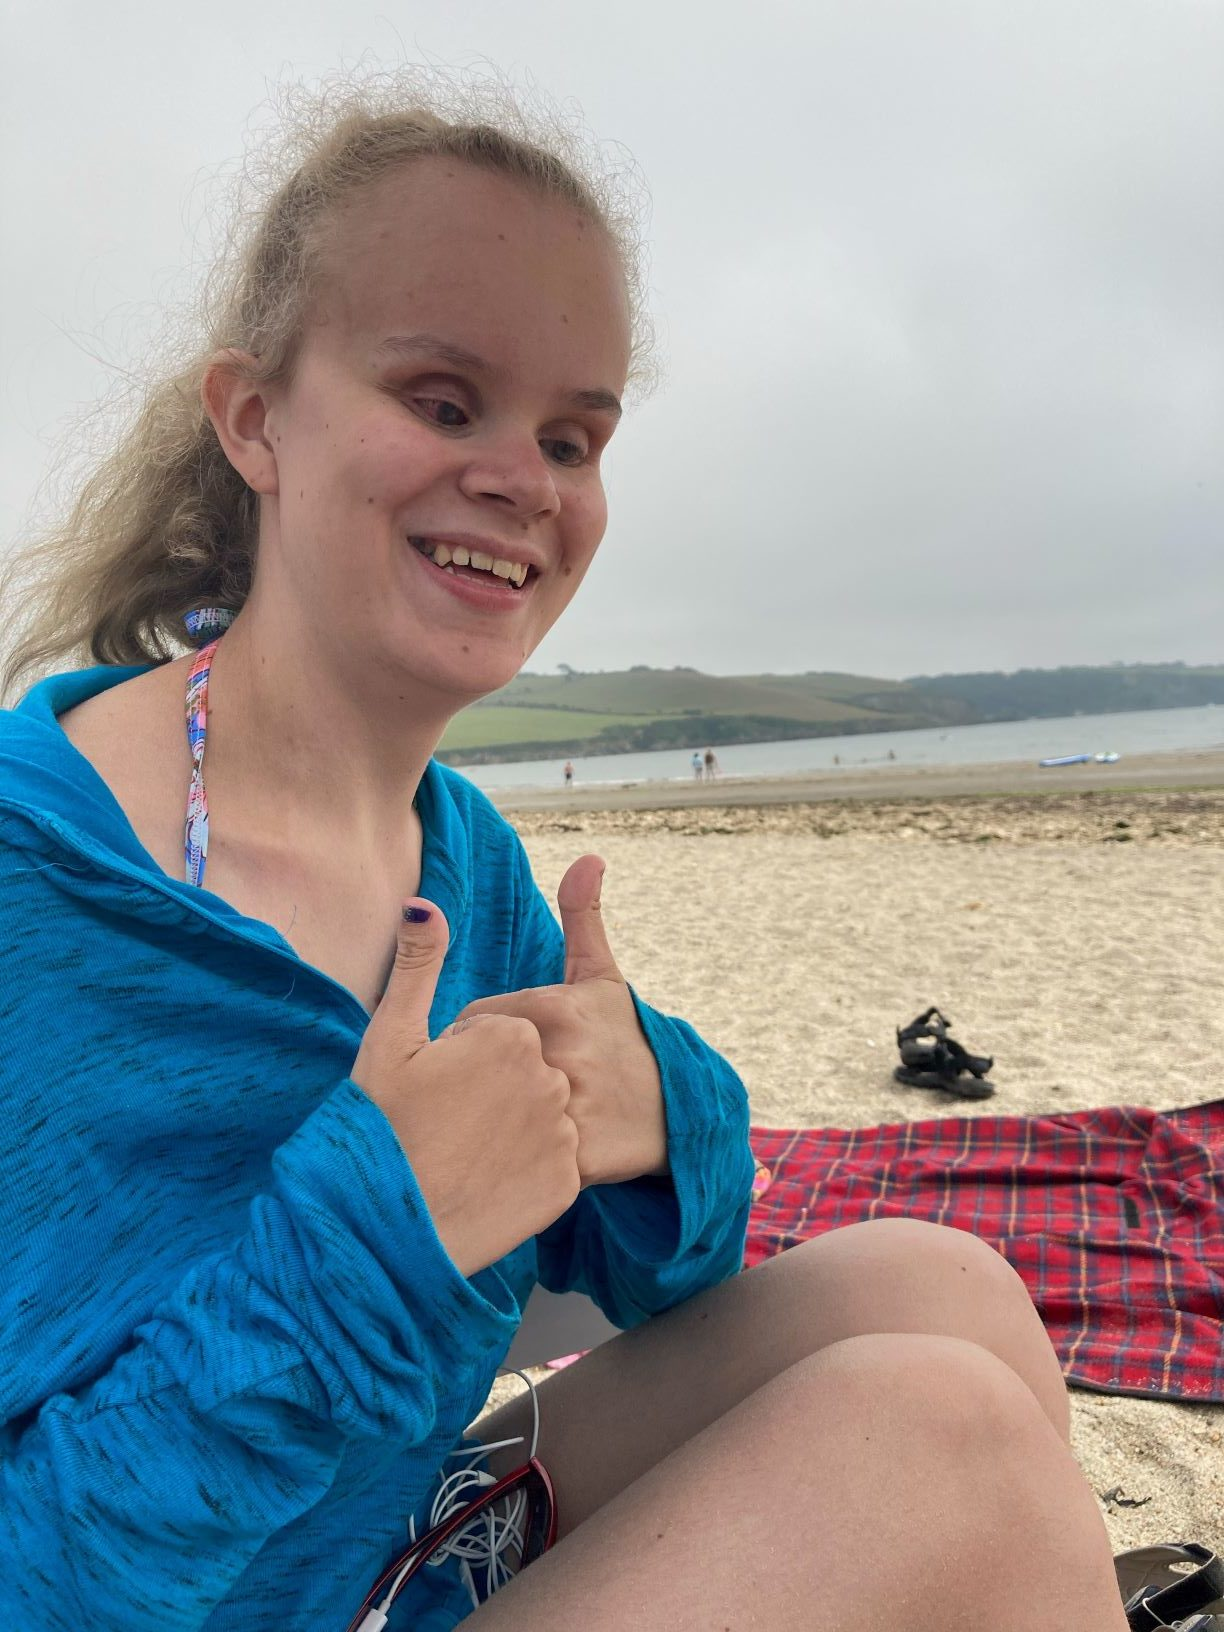 Martha Page smiling on a beach with a thumbs up